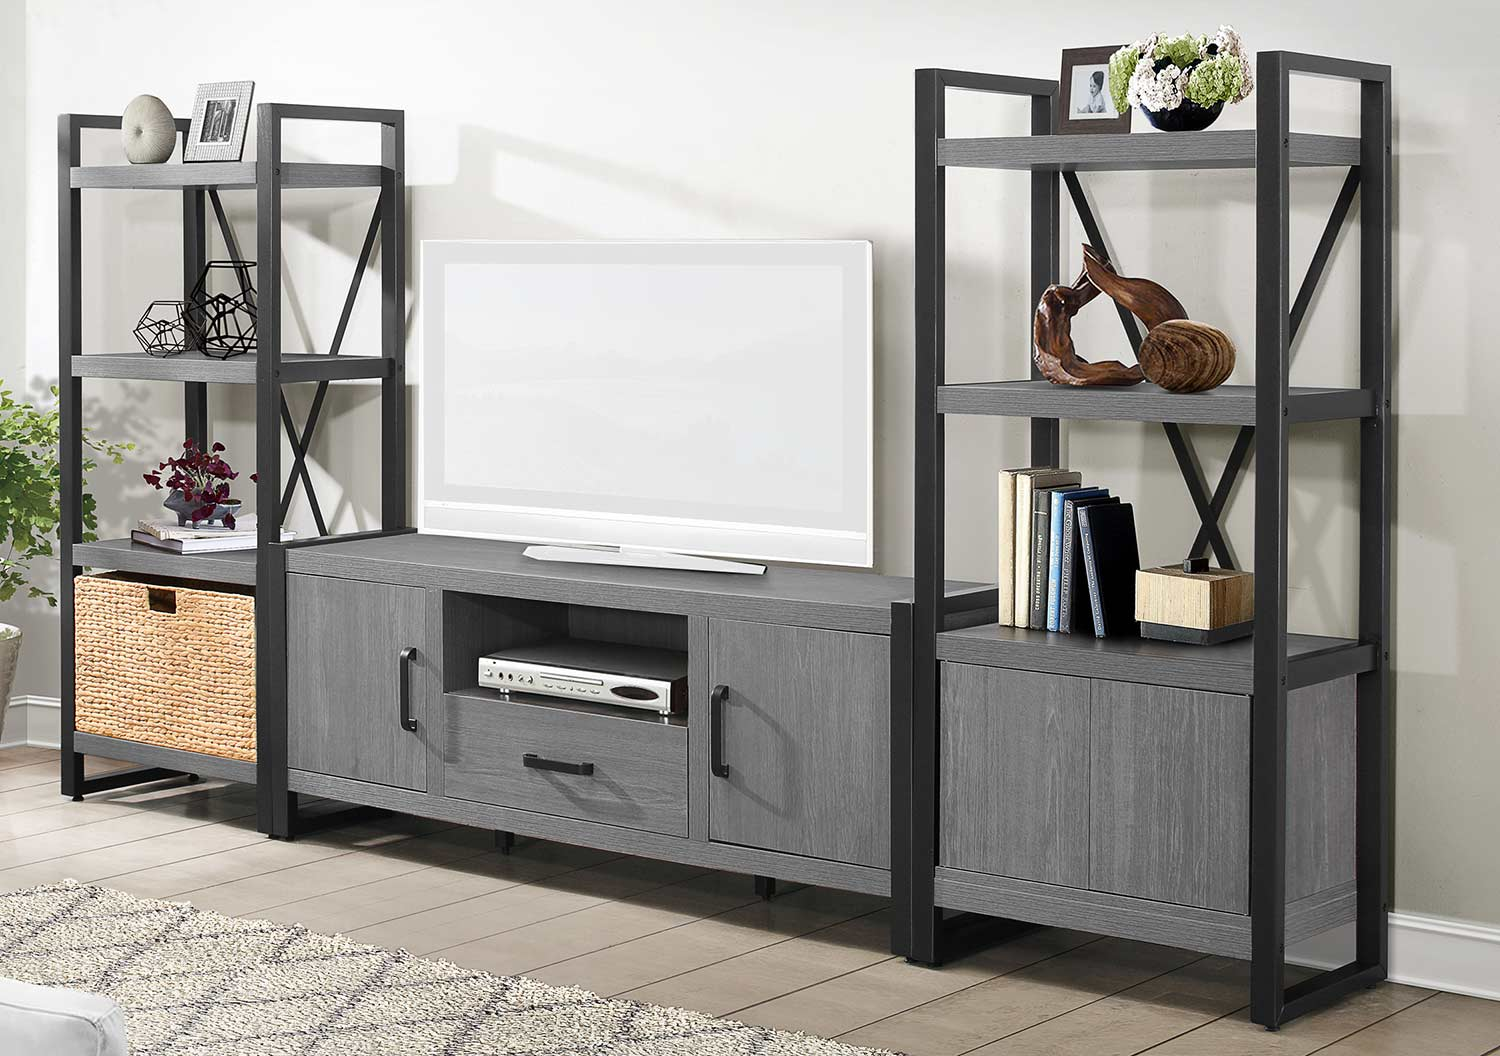 Homelegance Dogue 63-inch Entertainment Center Set - Gunmetal - Gray